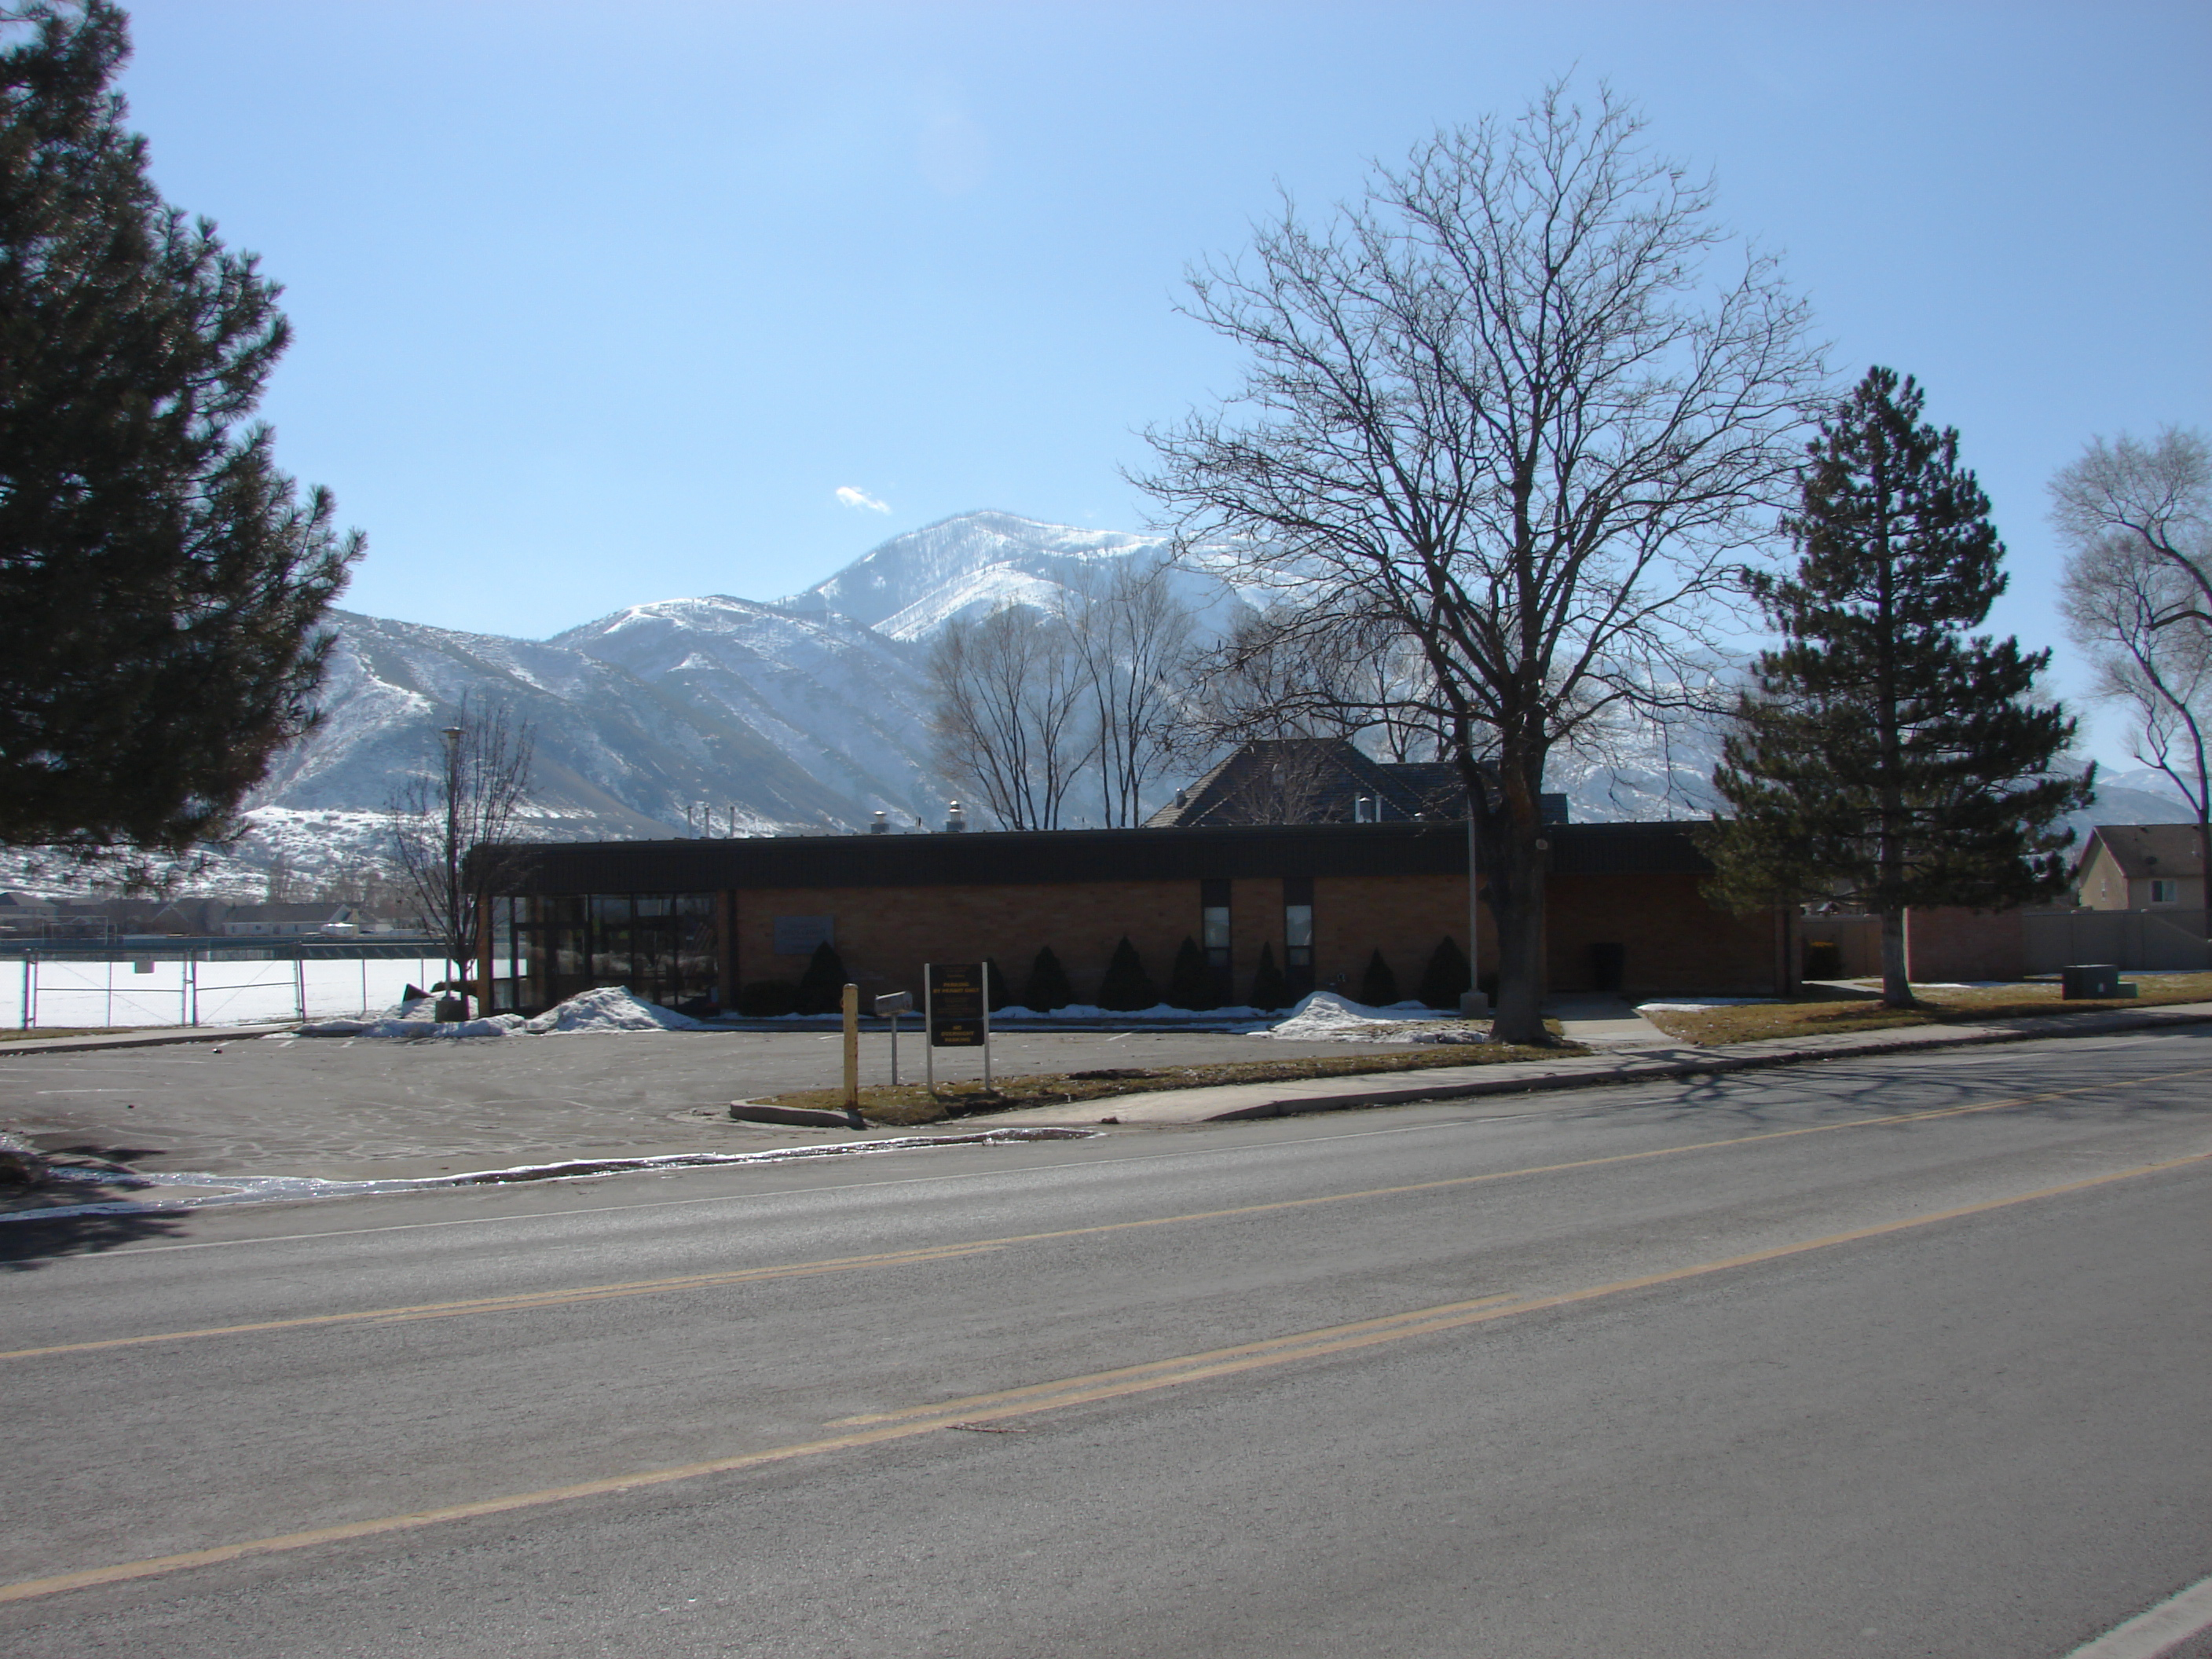 File:LDS Seminary building at Payson Jr  High School, Feb 16